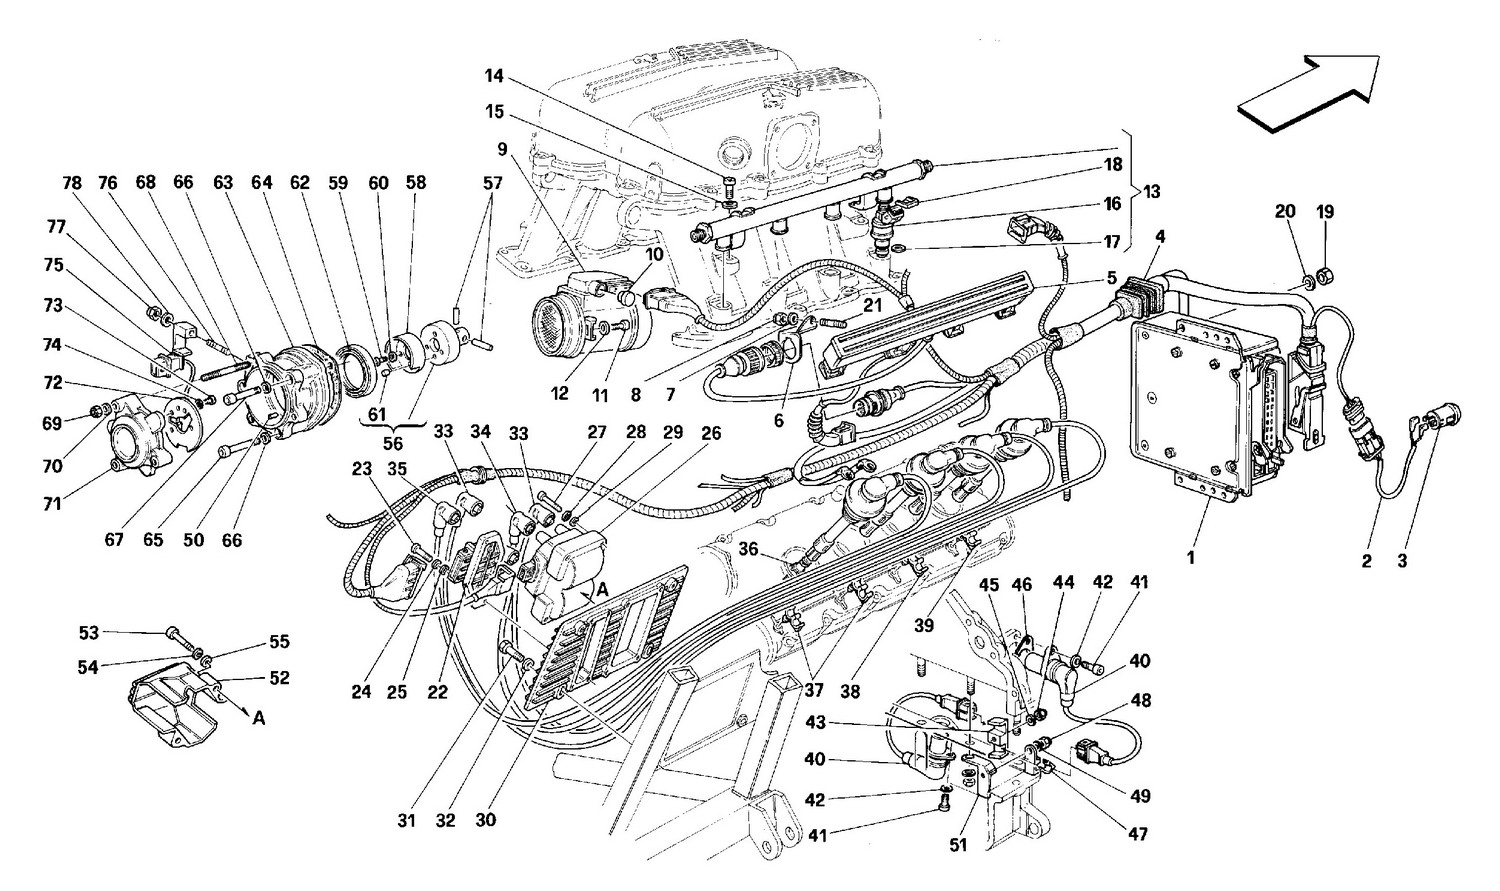 Table 7 - Air Injection - Ignition